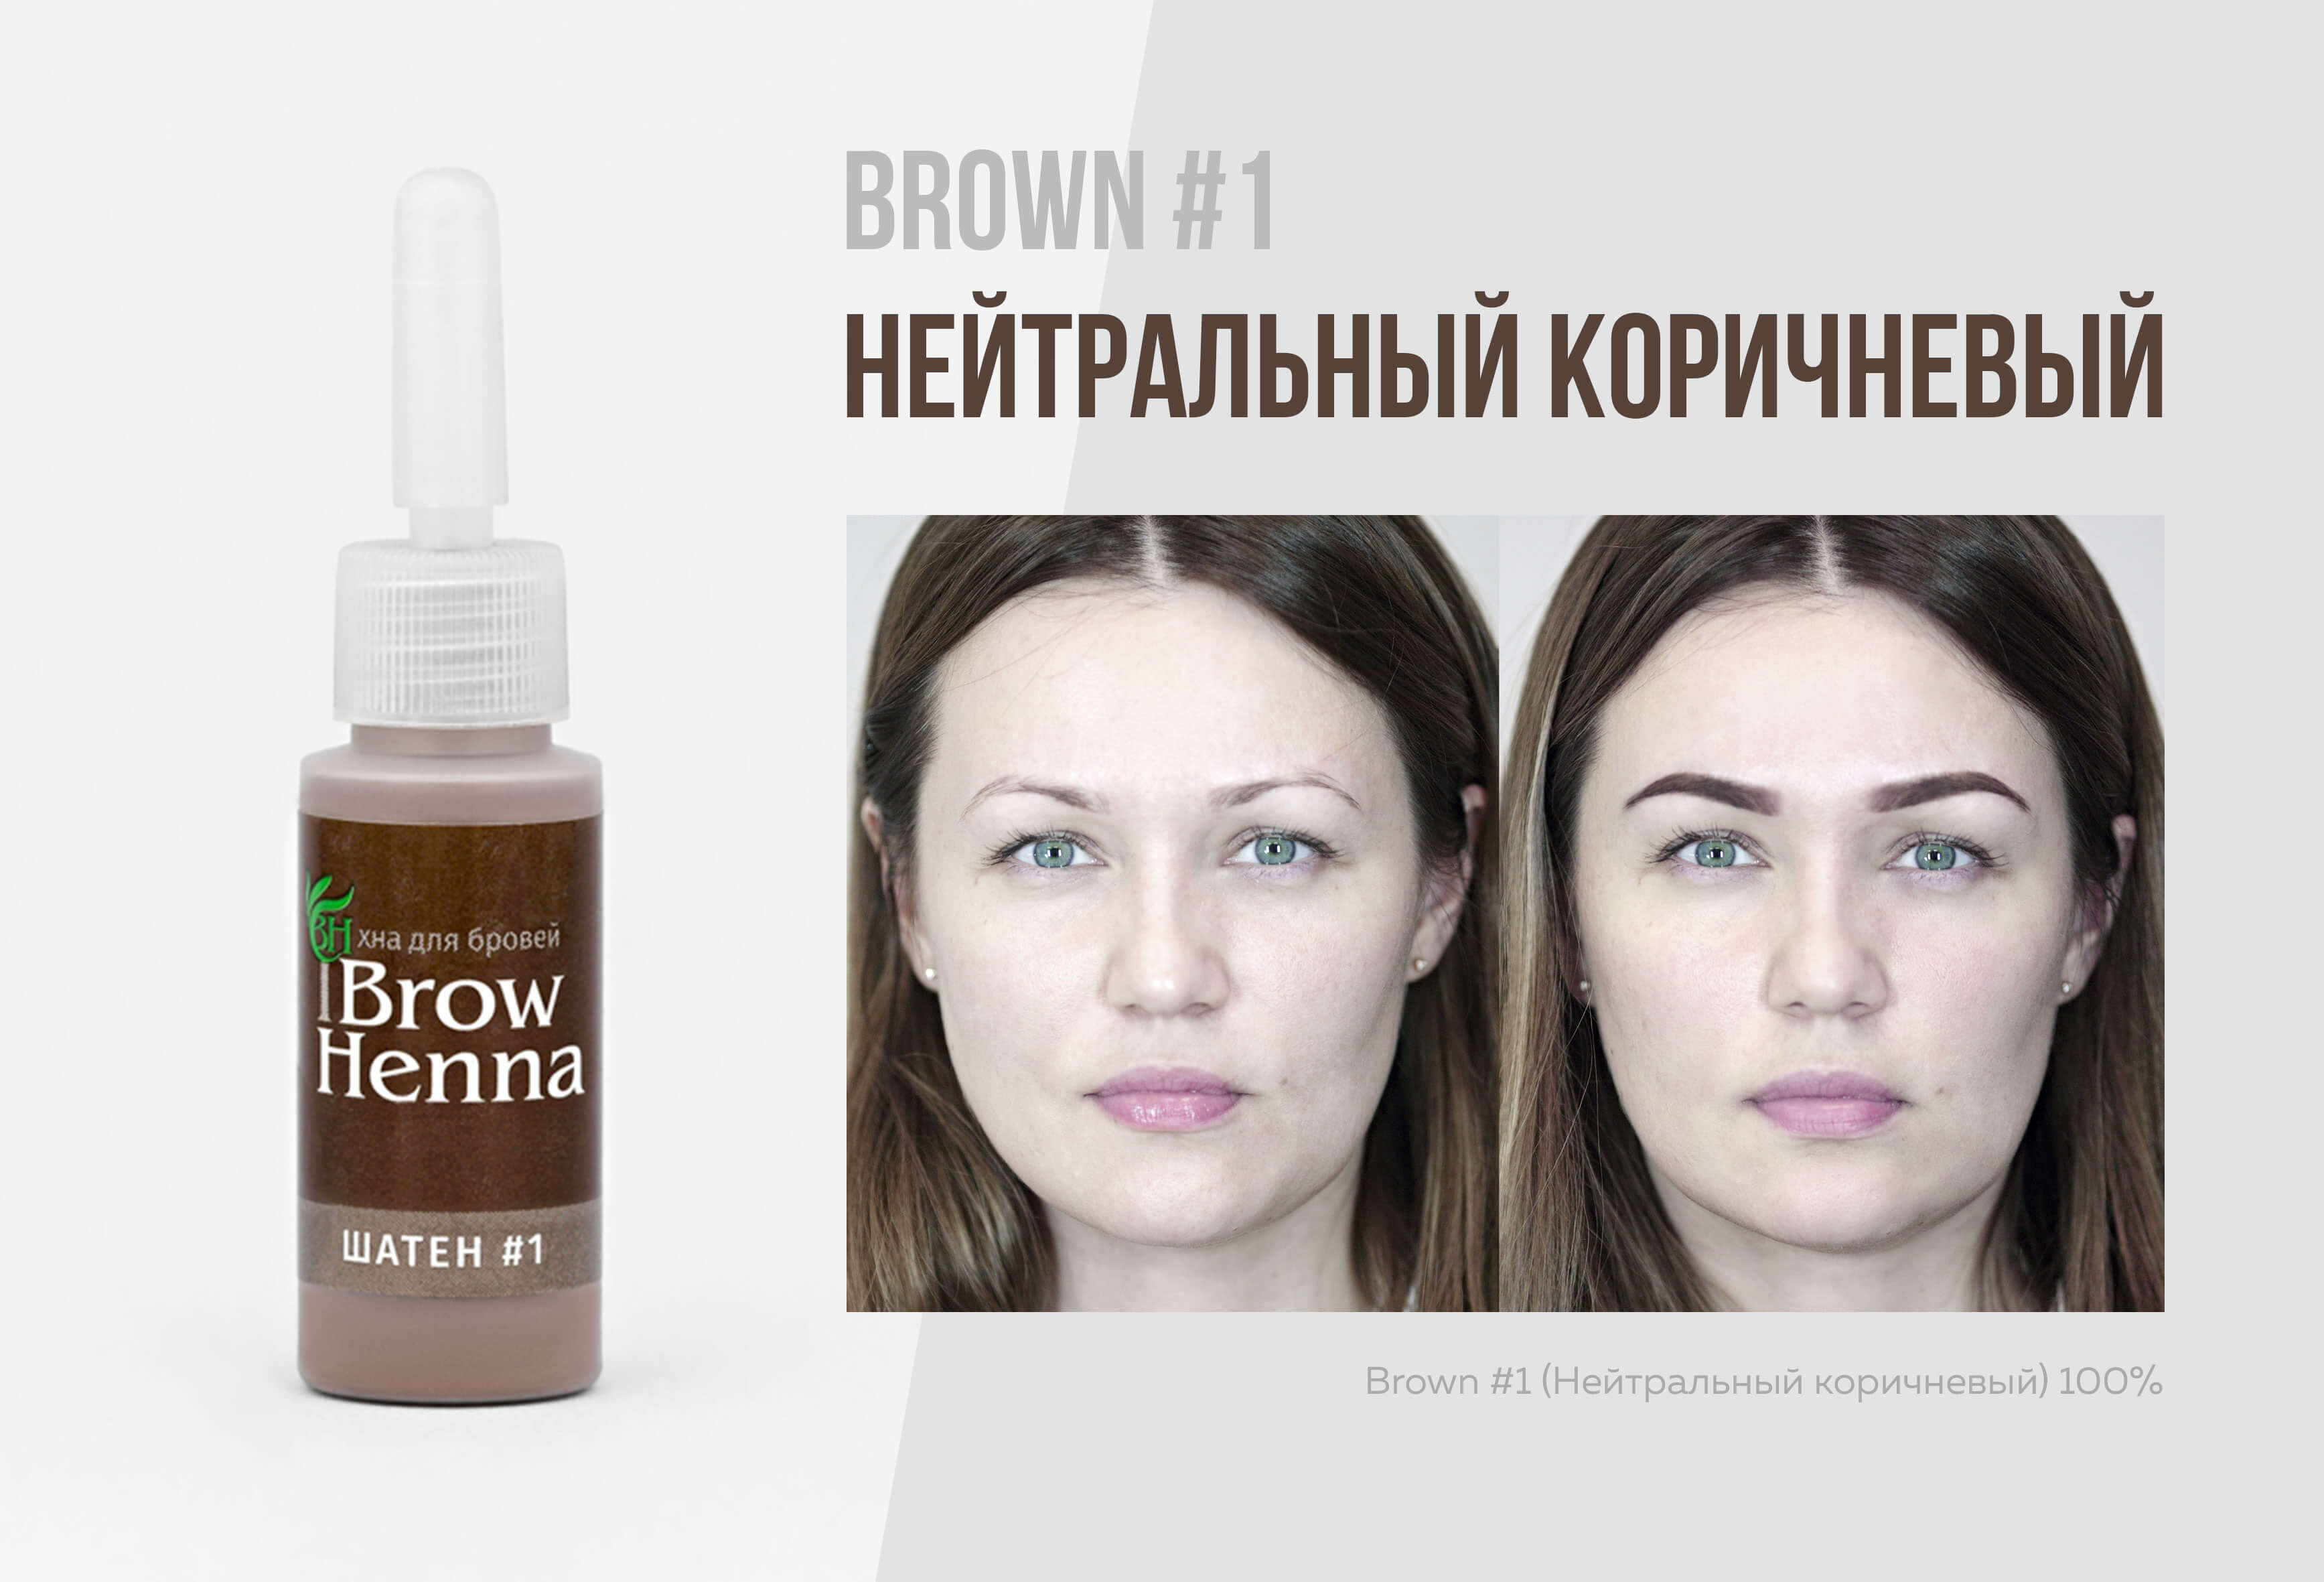 Henna For Eyebrows Brown Hair 1 Neutral Brown Bh Brow Henna In